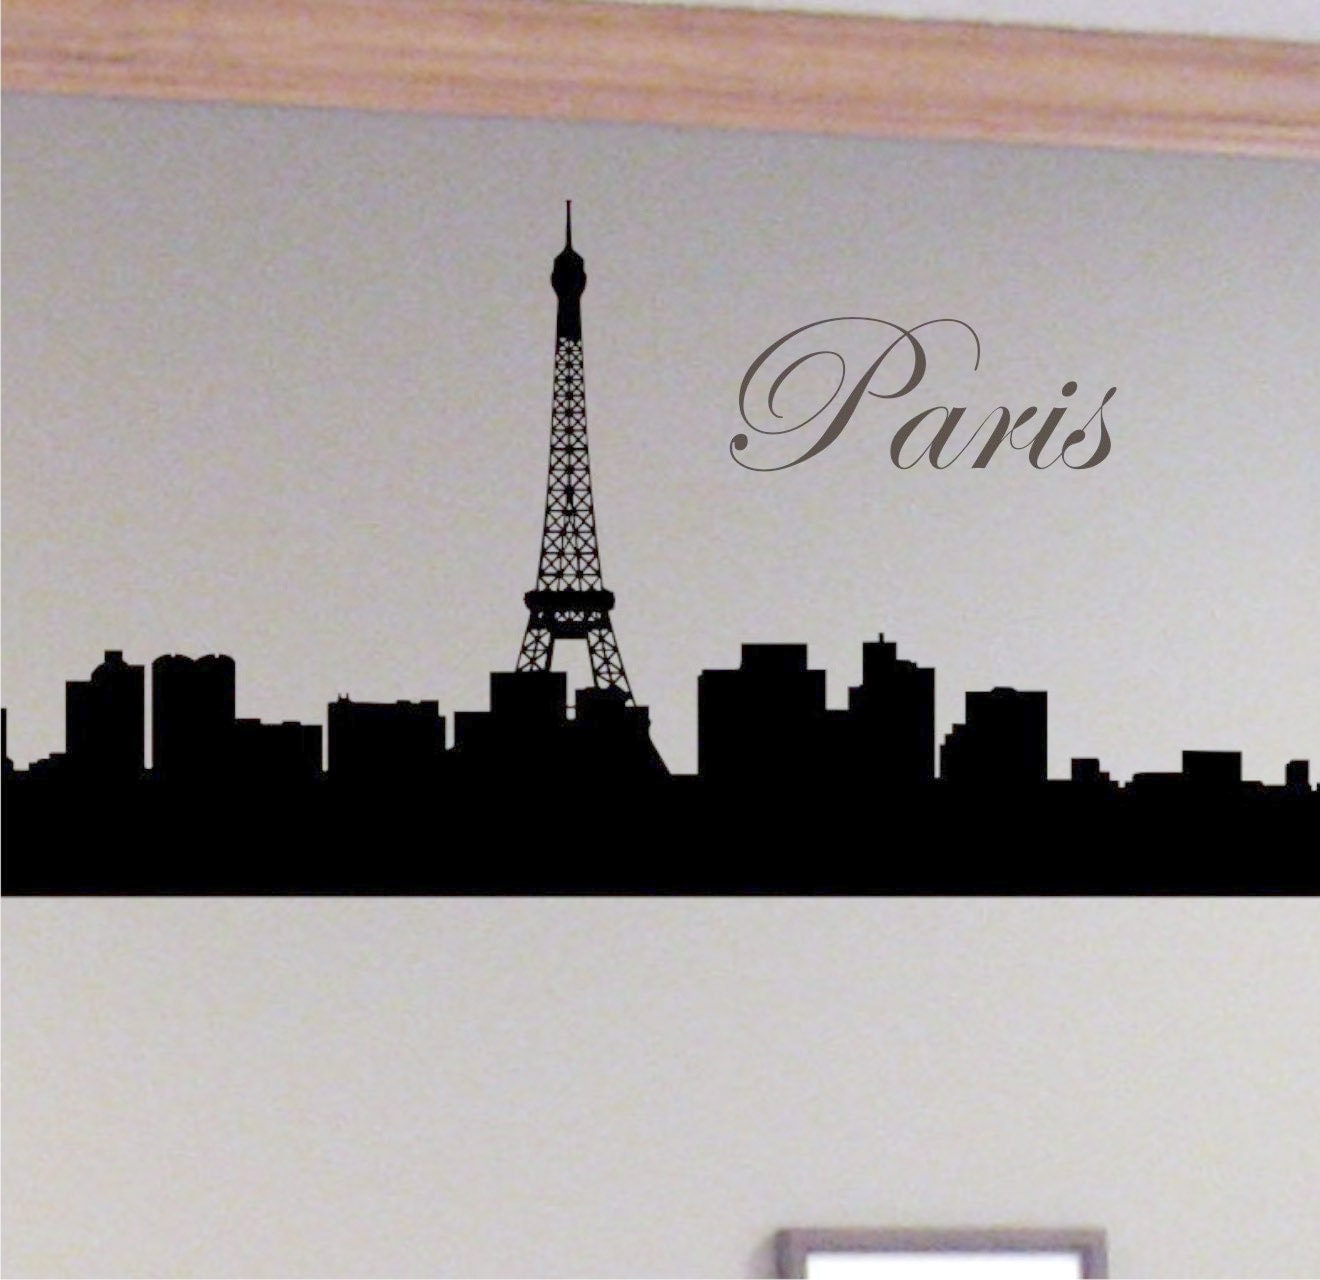 items similar to paris skyline with eiffel tower removable wall decal on etsy. Black Bedroom Furniture Sets. Home Design Ideas